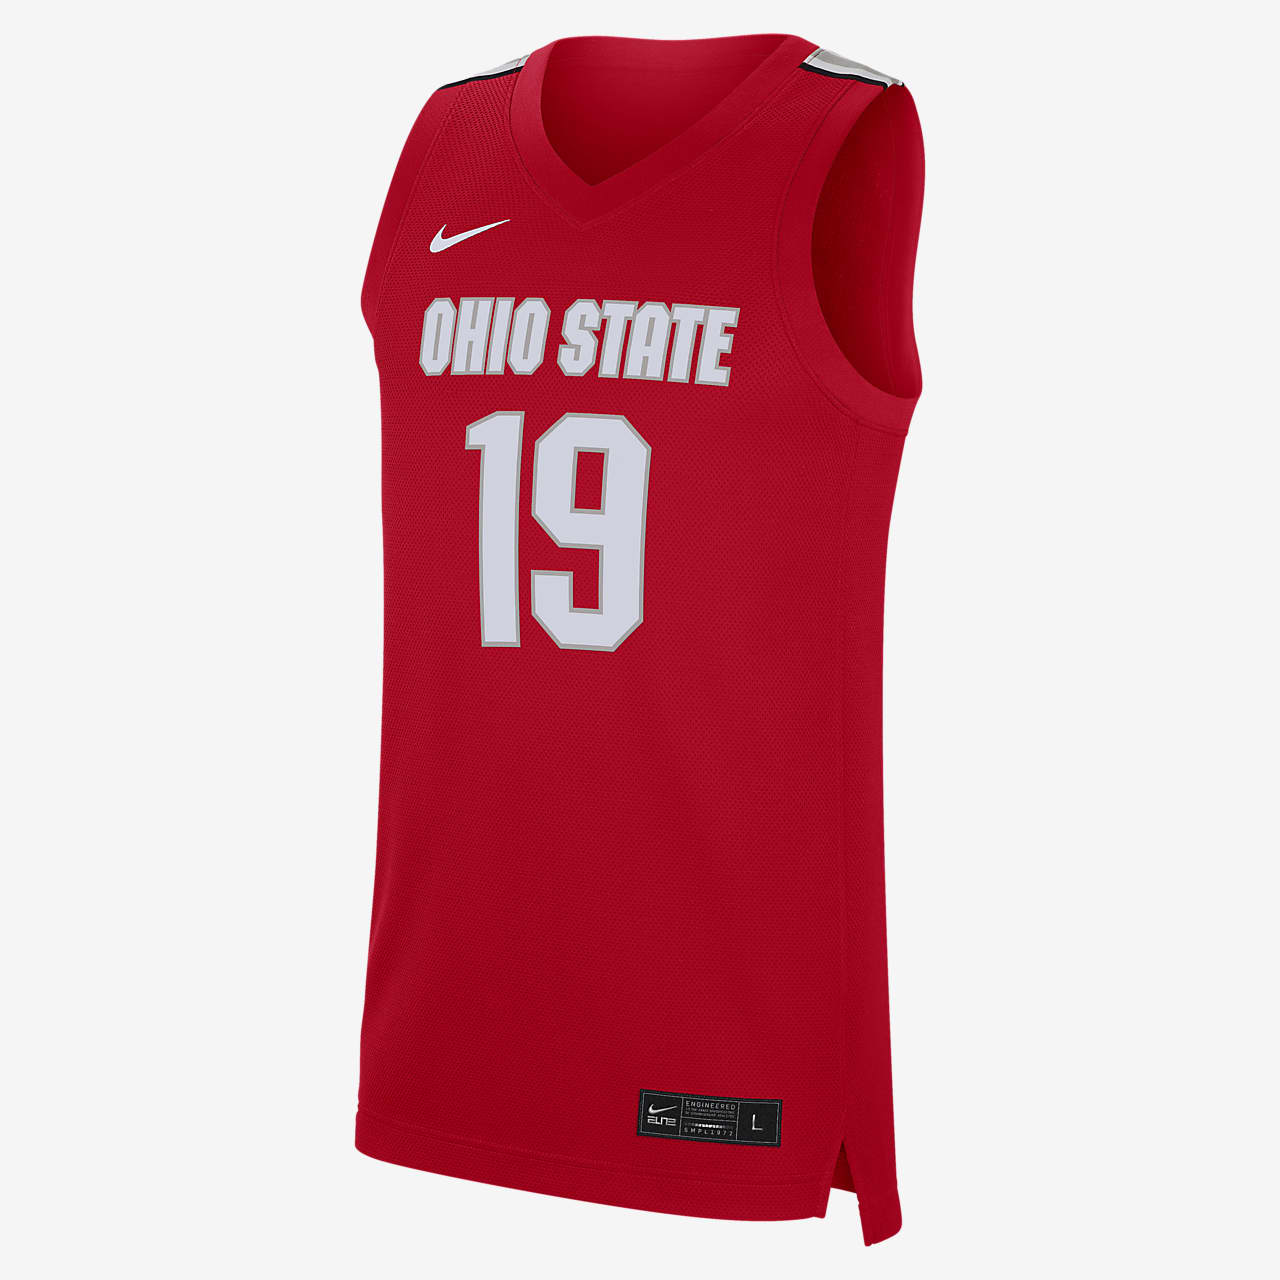 Nike College Replica (Ohio State) Men's Basketball Jersey